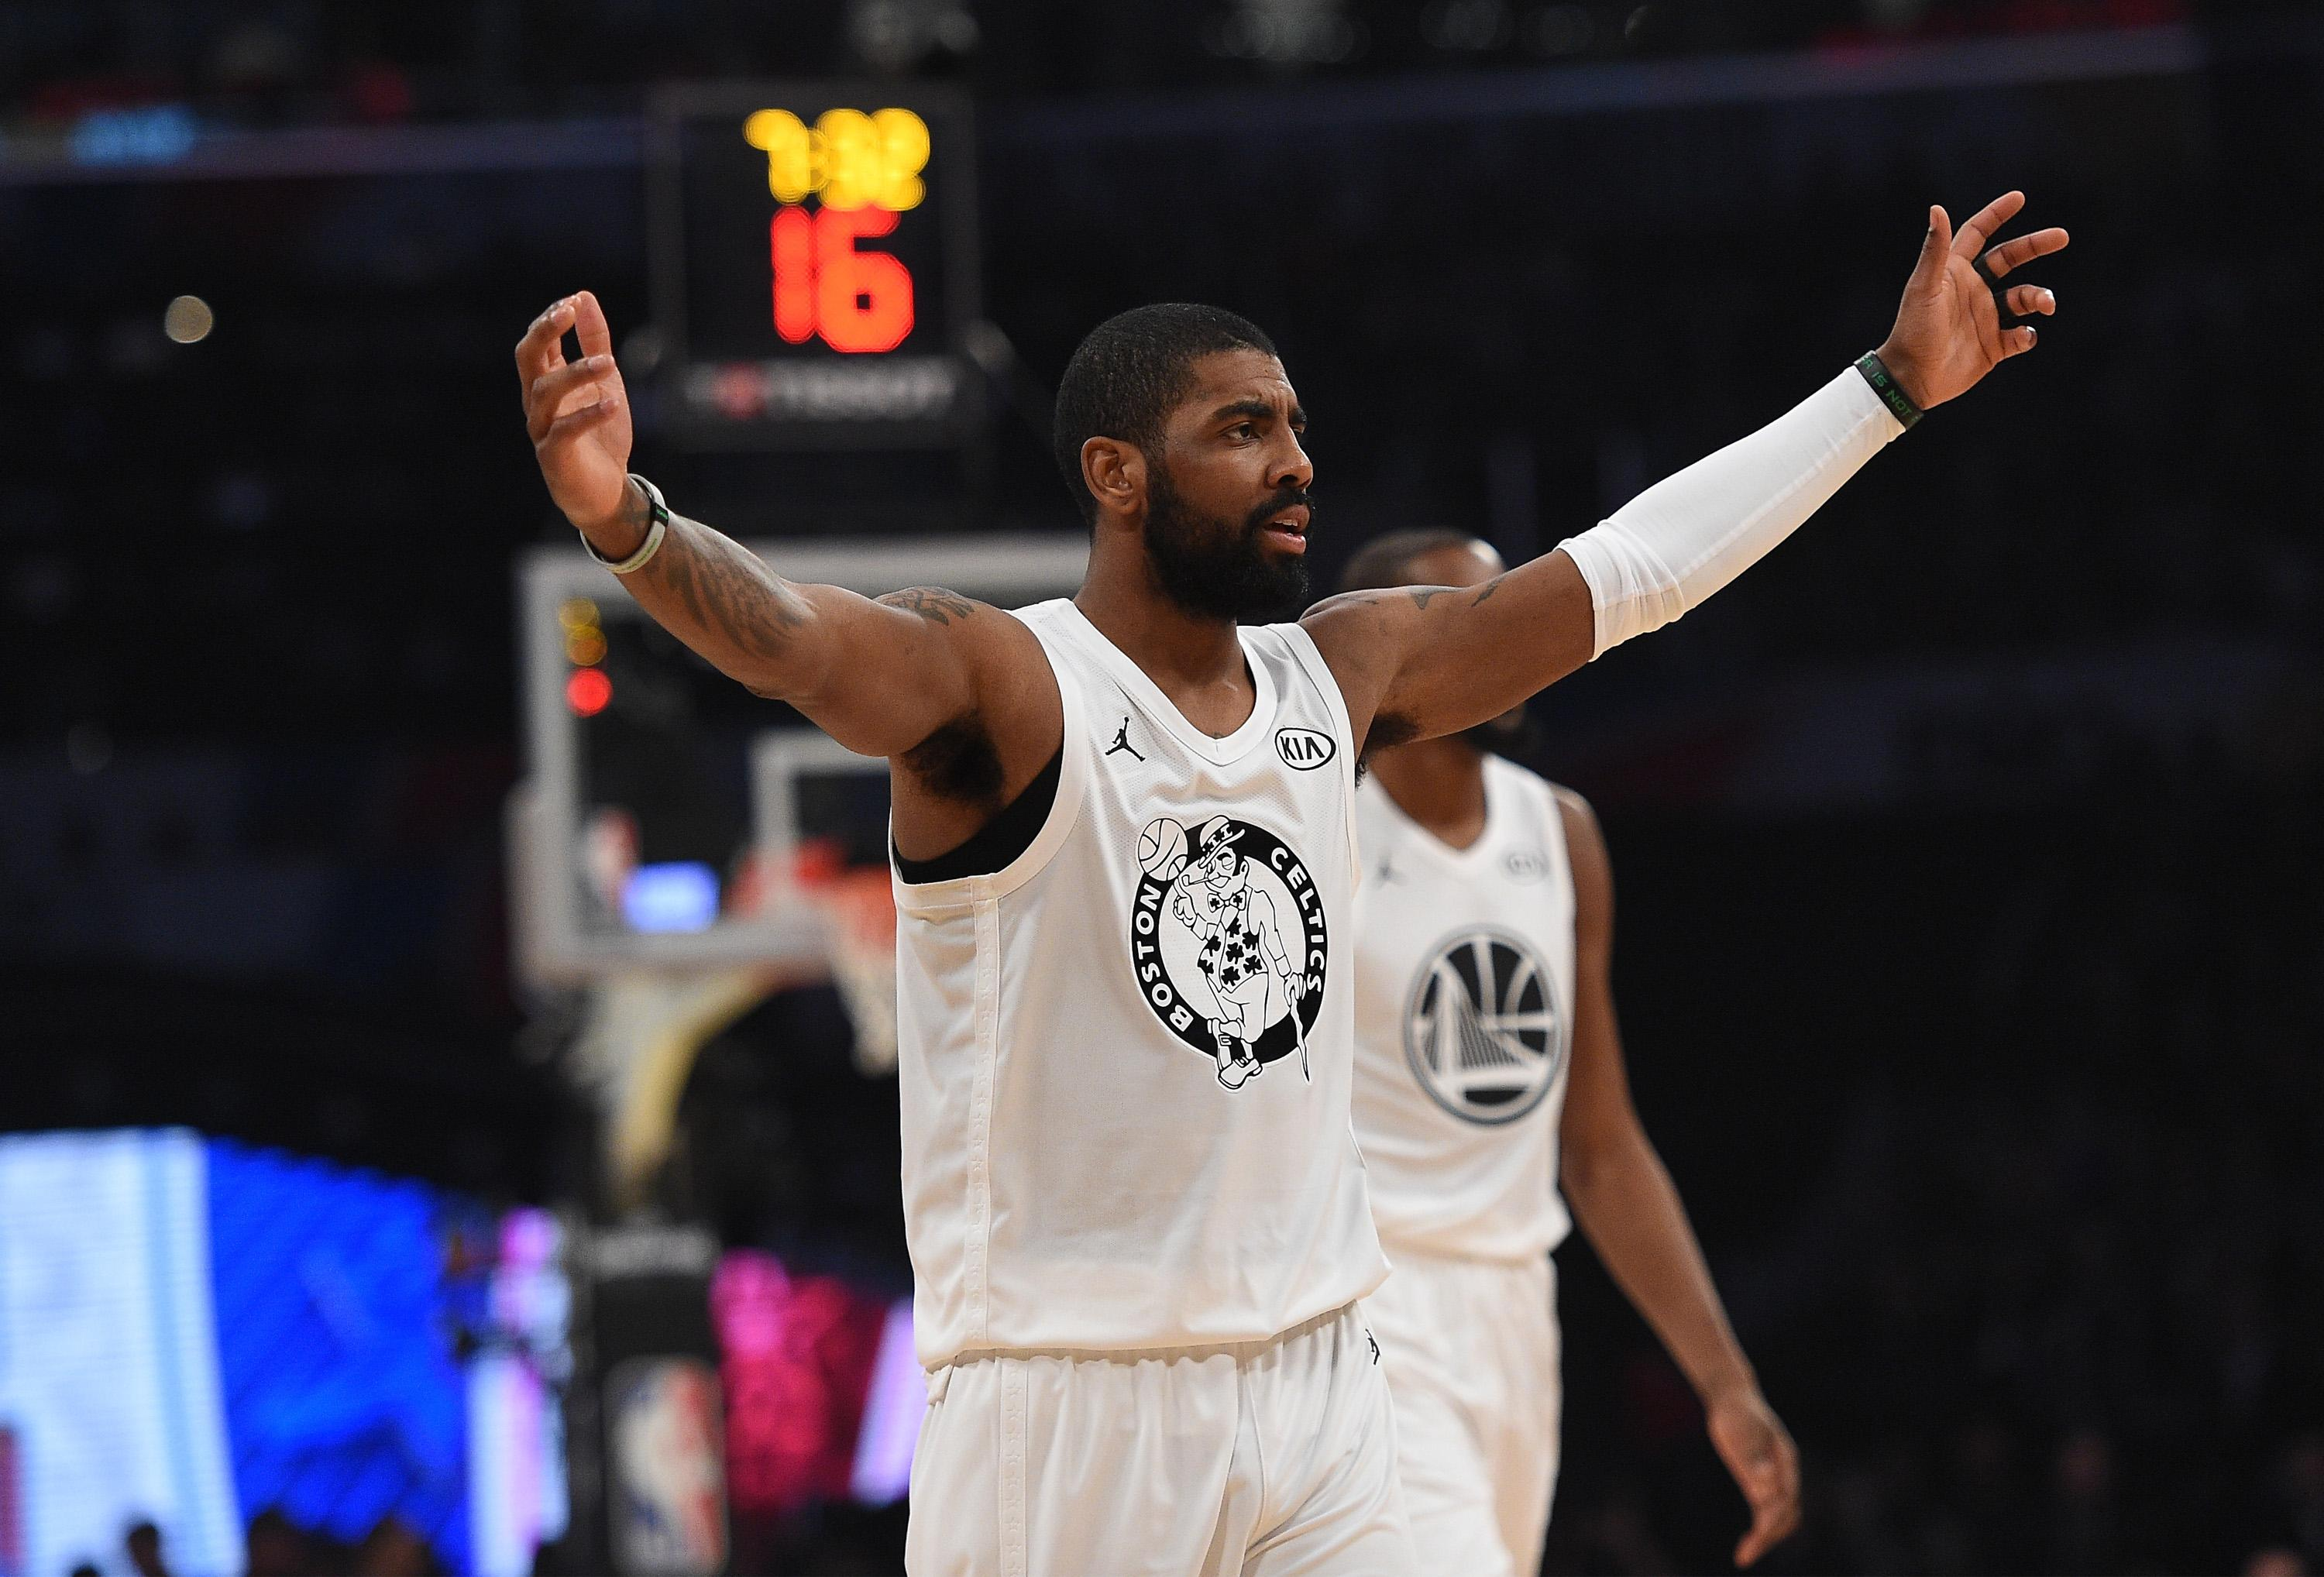 Ex-Cavaliers GM Explains Why Kyrie Irving Wanted Out From Cleveland